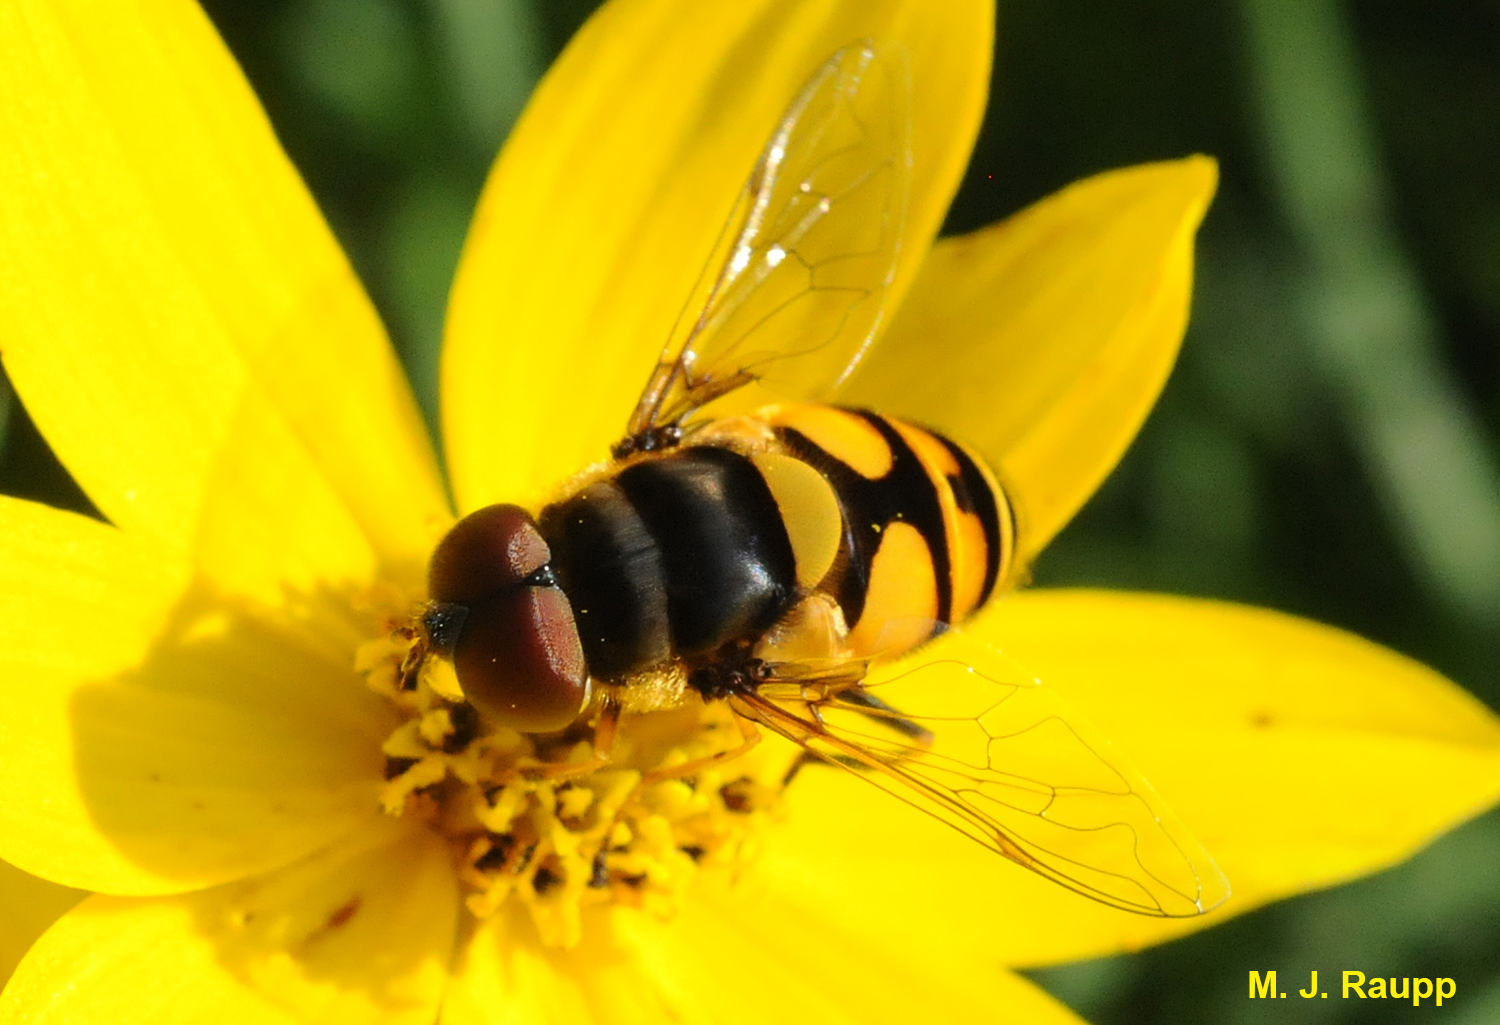 Bands of yellow brown on flower flies mimic those found on stinging insects. This may deter would be predators from attempting an attack on the harmless flower fly.